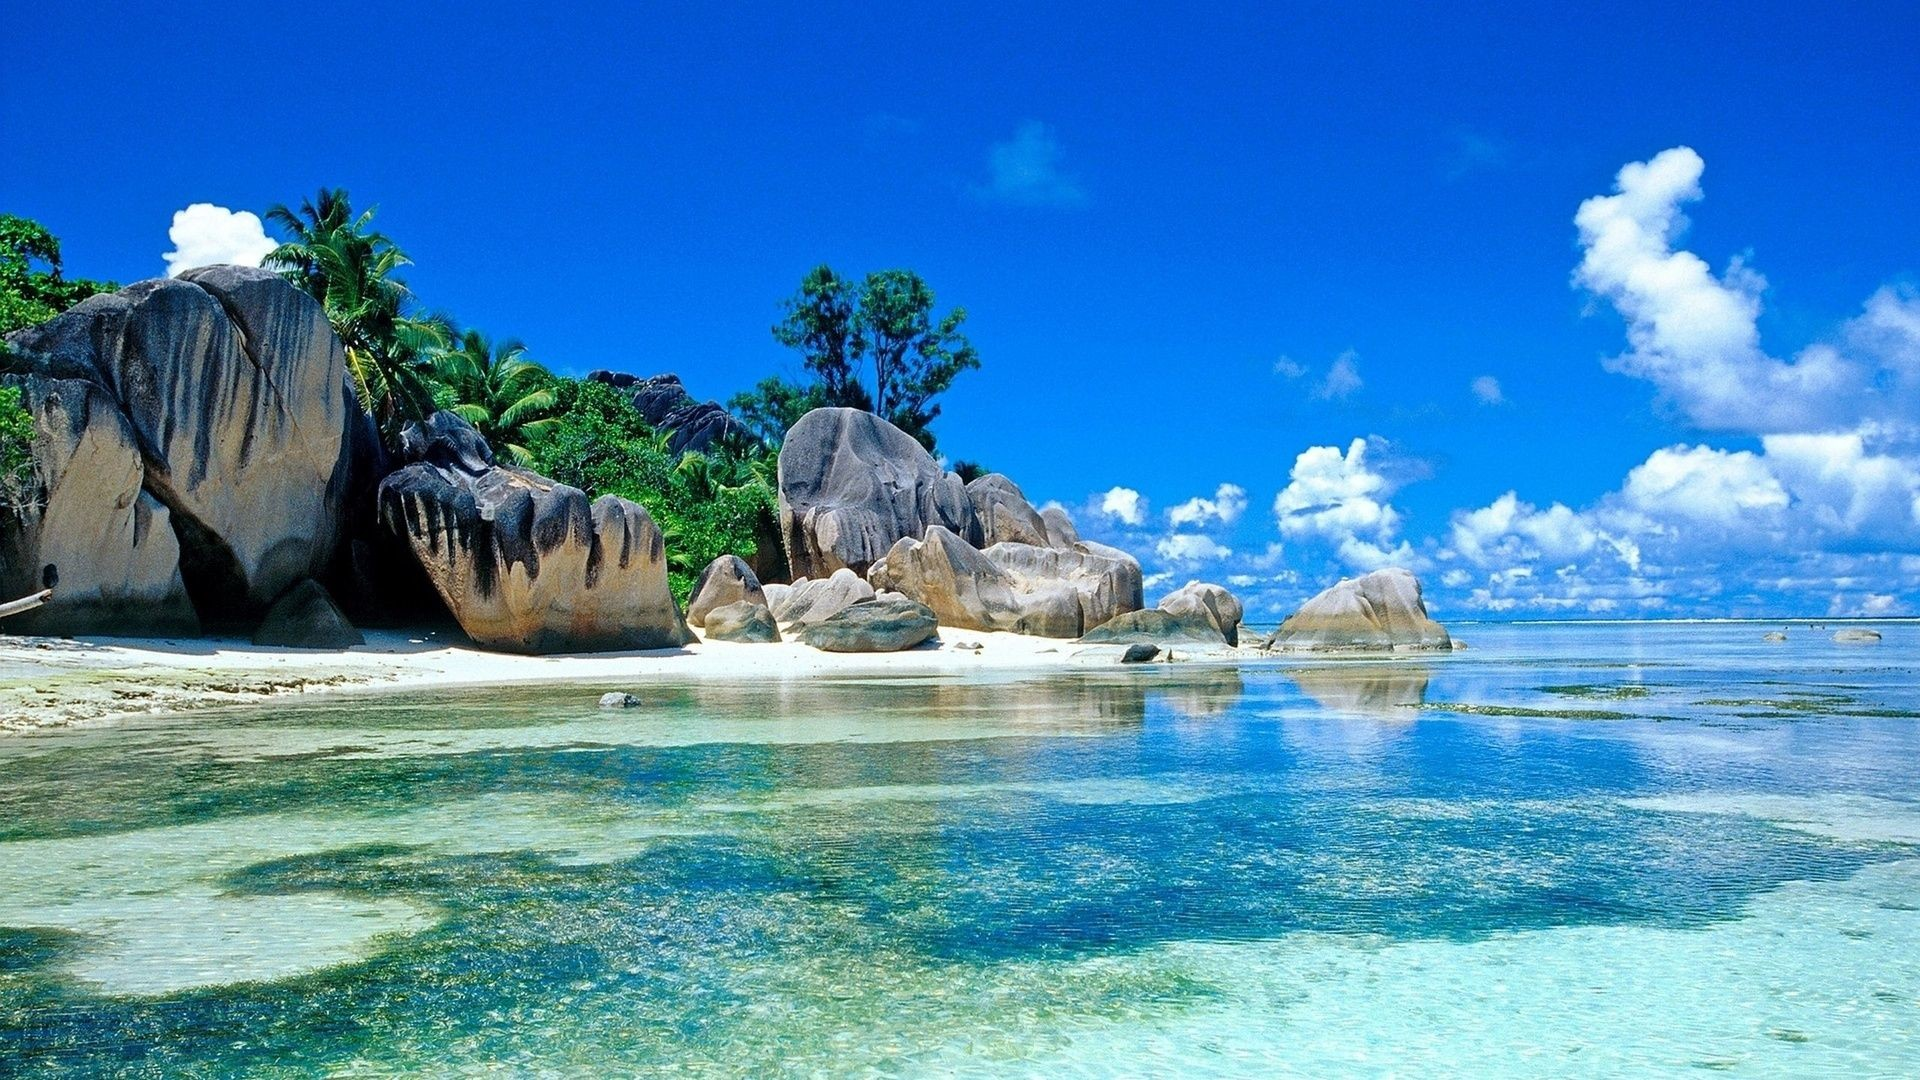 72 Beach Hd Wallpapers on WallpaperPlay 1920x1080